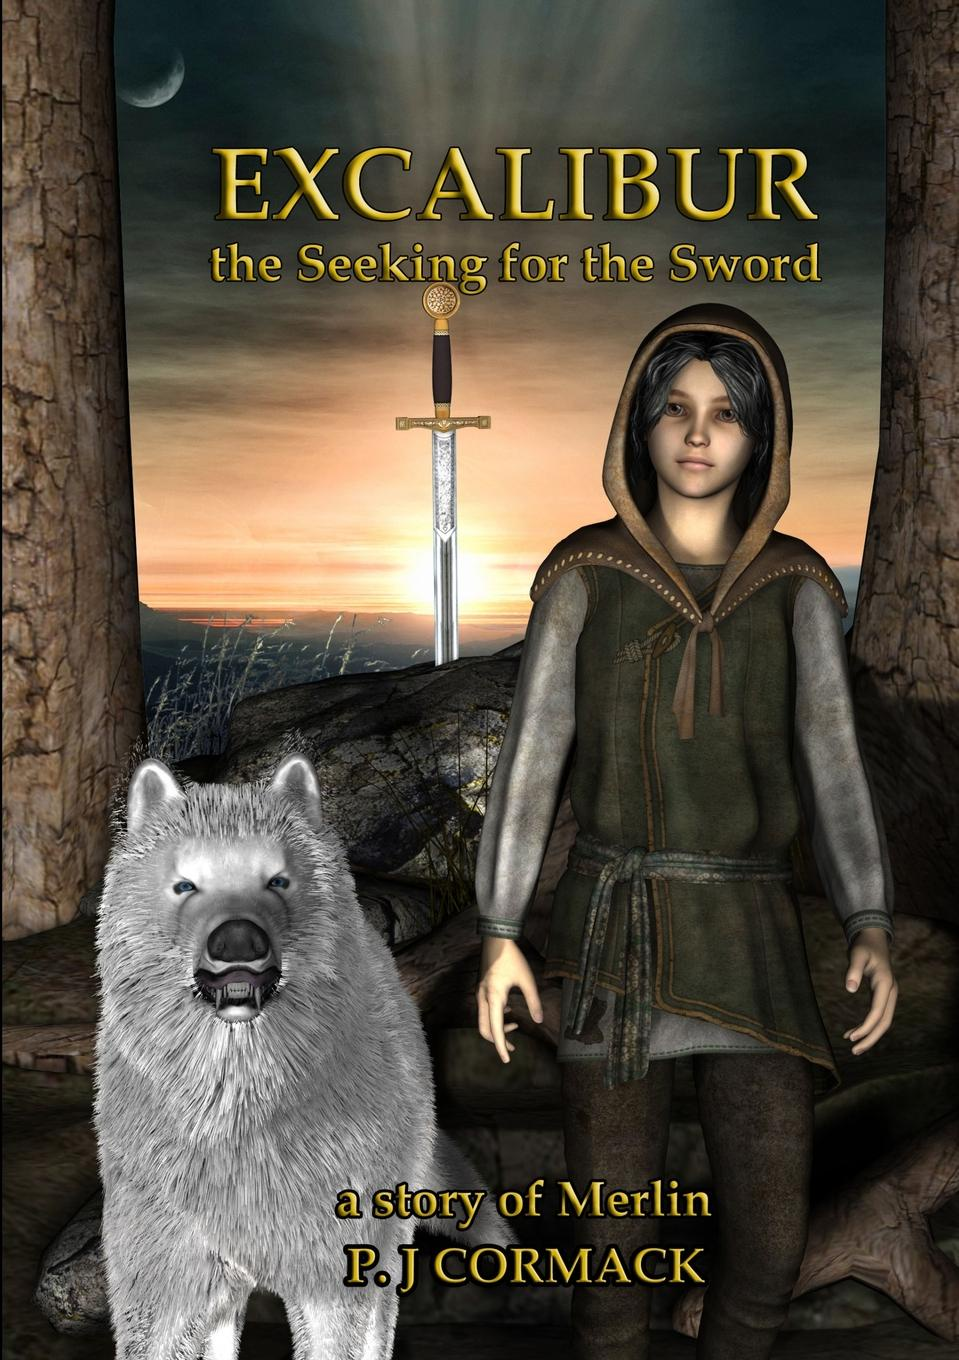 P.J Cormack Excalibur. The Seeking for the Sword. A Story of Merlin king conan the phoenix on the sword